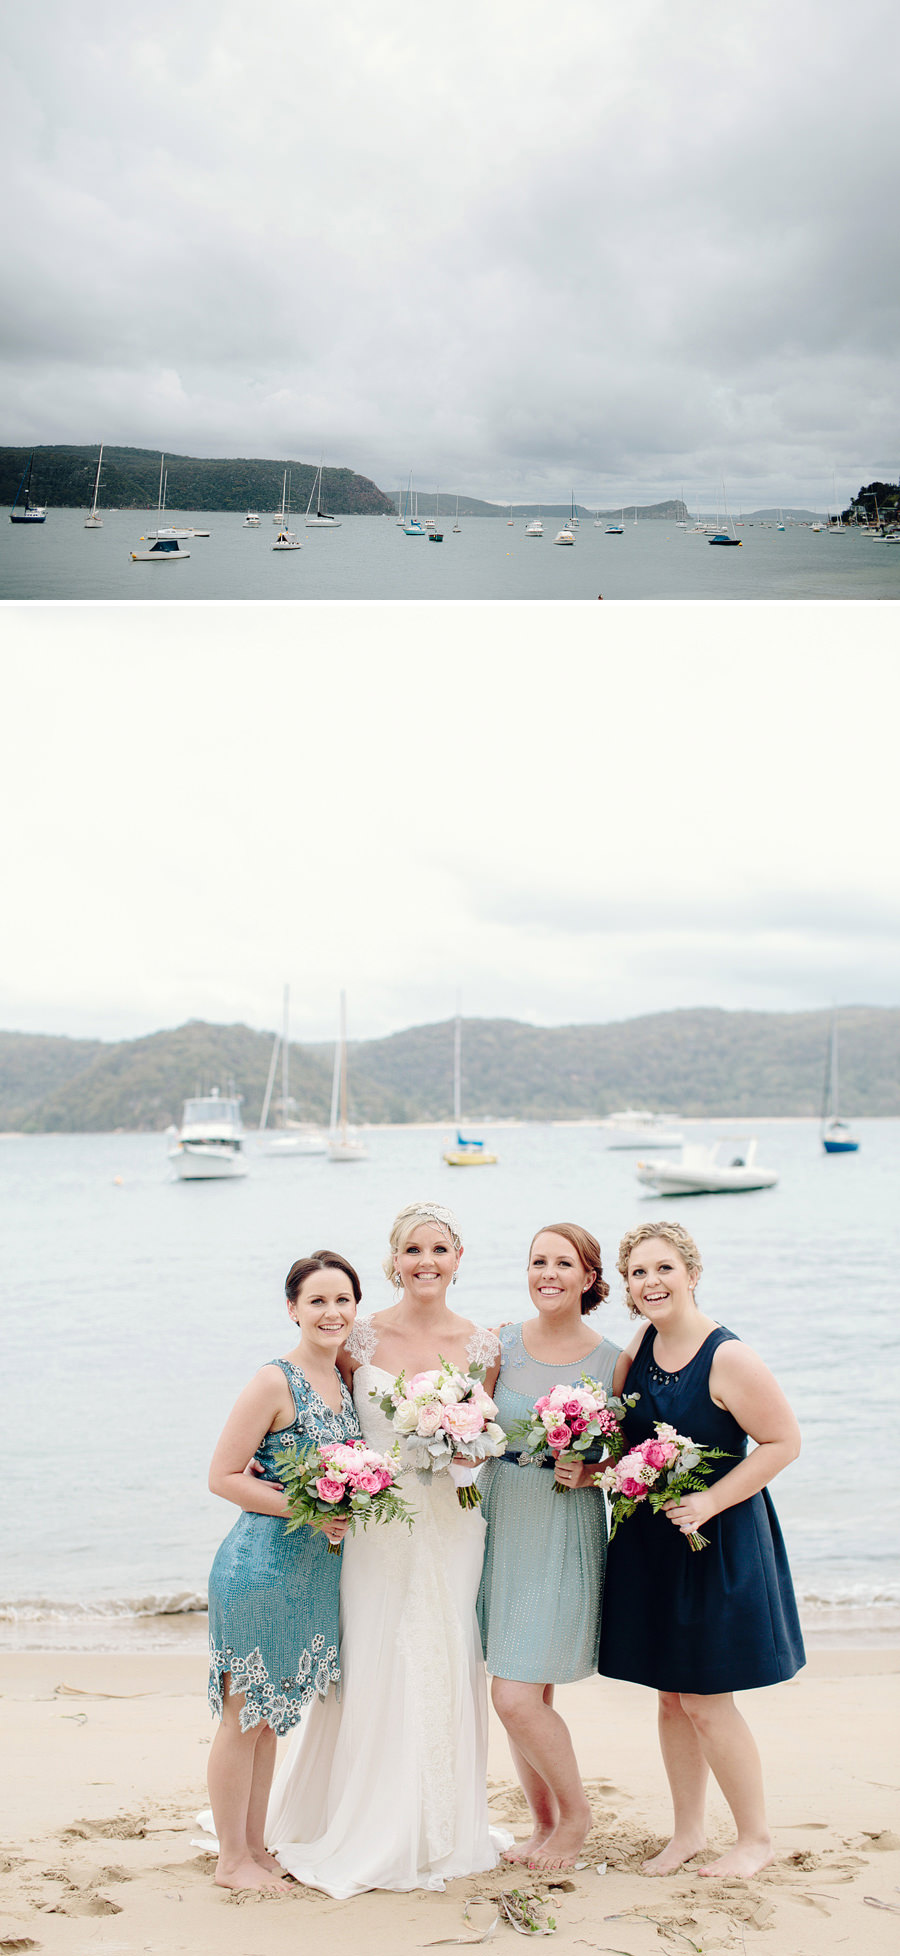 Palm Beach Wedding Photographer: Bridal Party Portraits